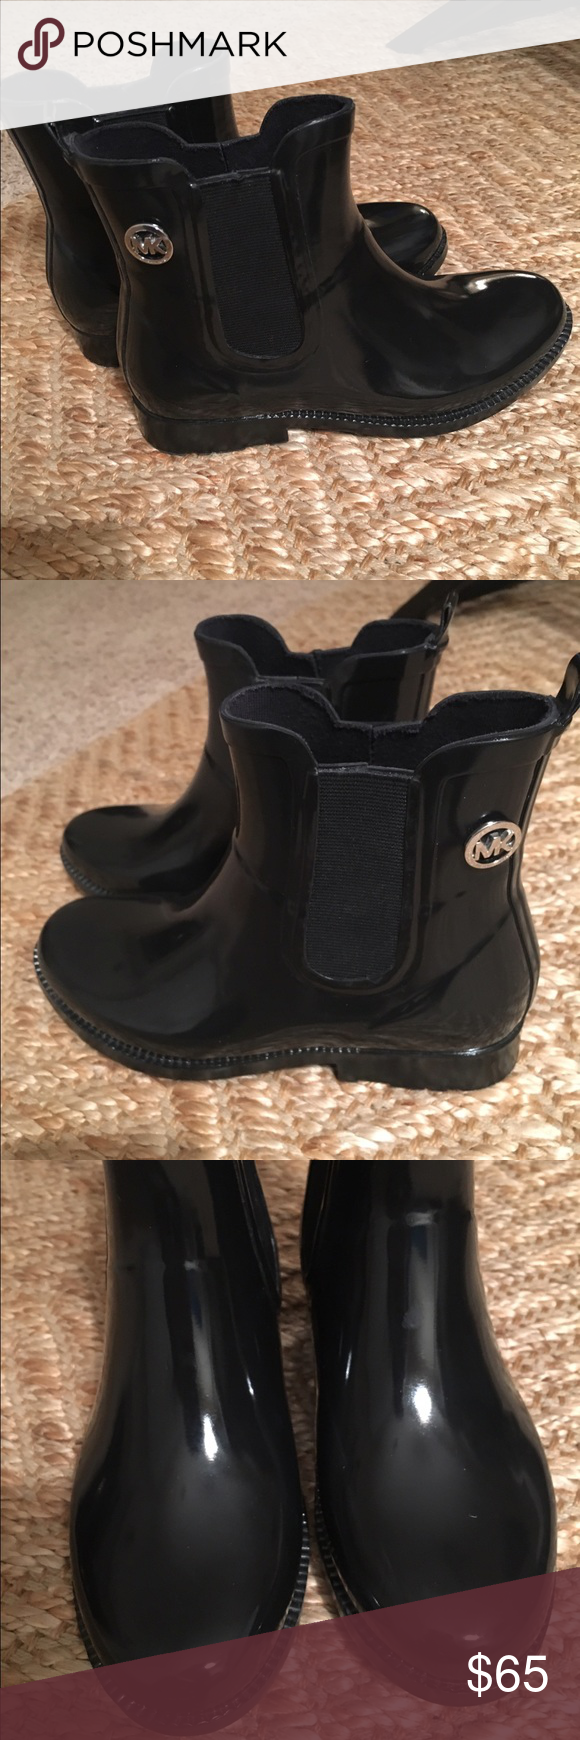 Michael Kors Boots Size 6. Worn once. Mint condition. Silver accent. Michael Kors Shoes Winter & Rain Boots